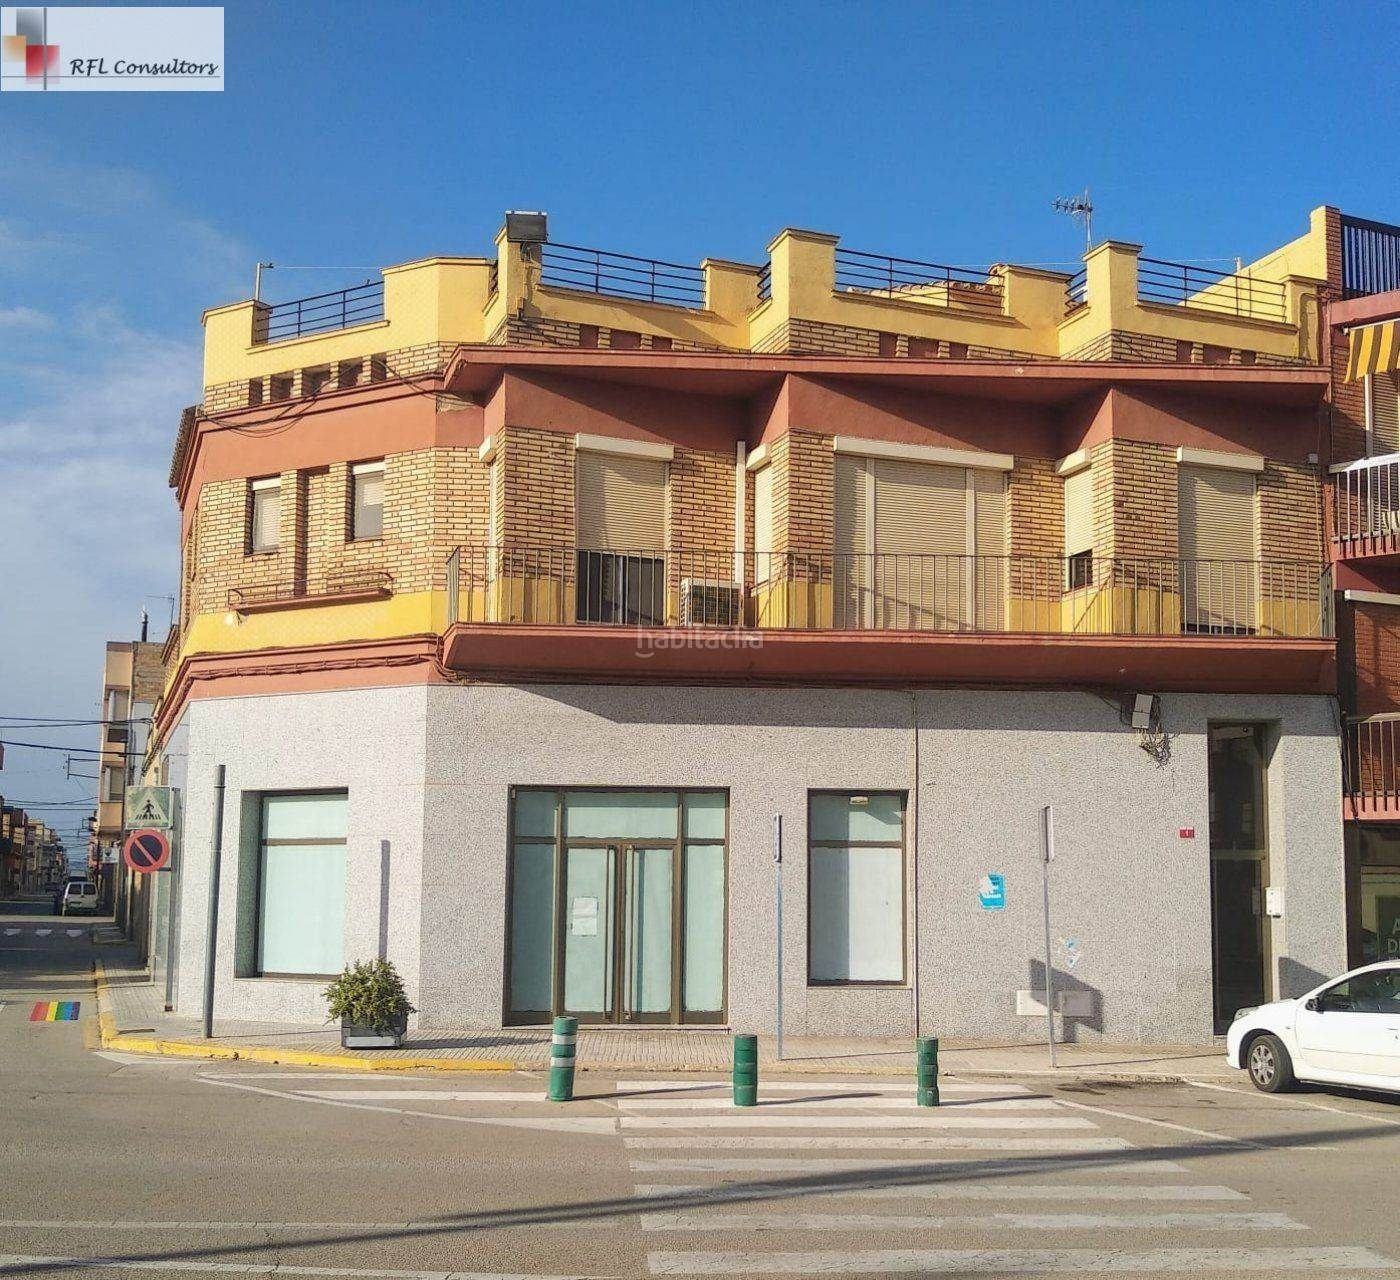 Rent Business premise in Camarles. Gran local en alquiler situado en el centro de camarles